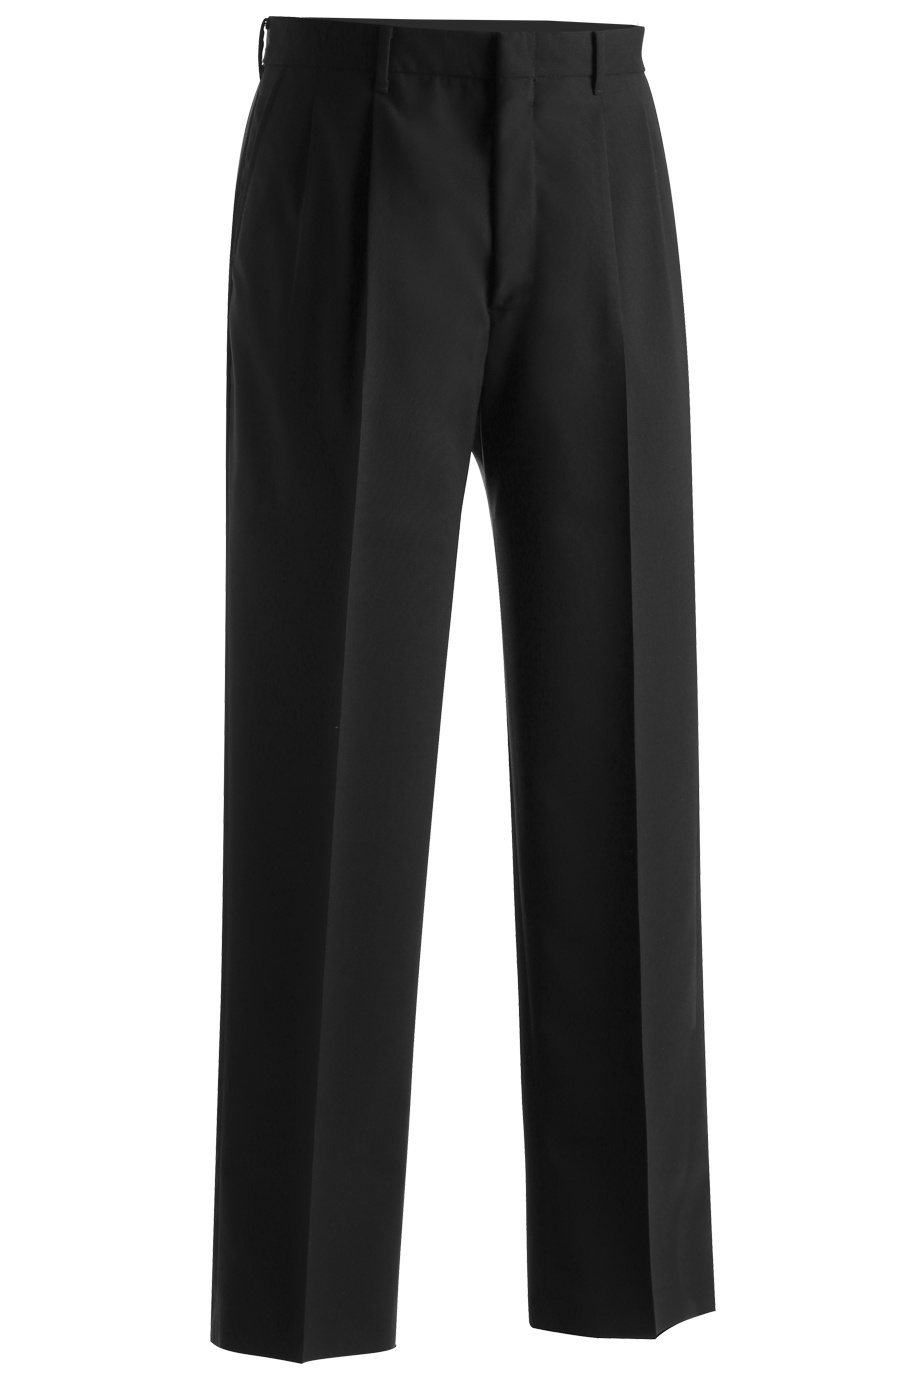 'Edwards 2680 Men's Wool Blend Pleated Dress Pant'